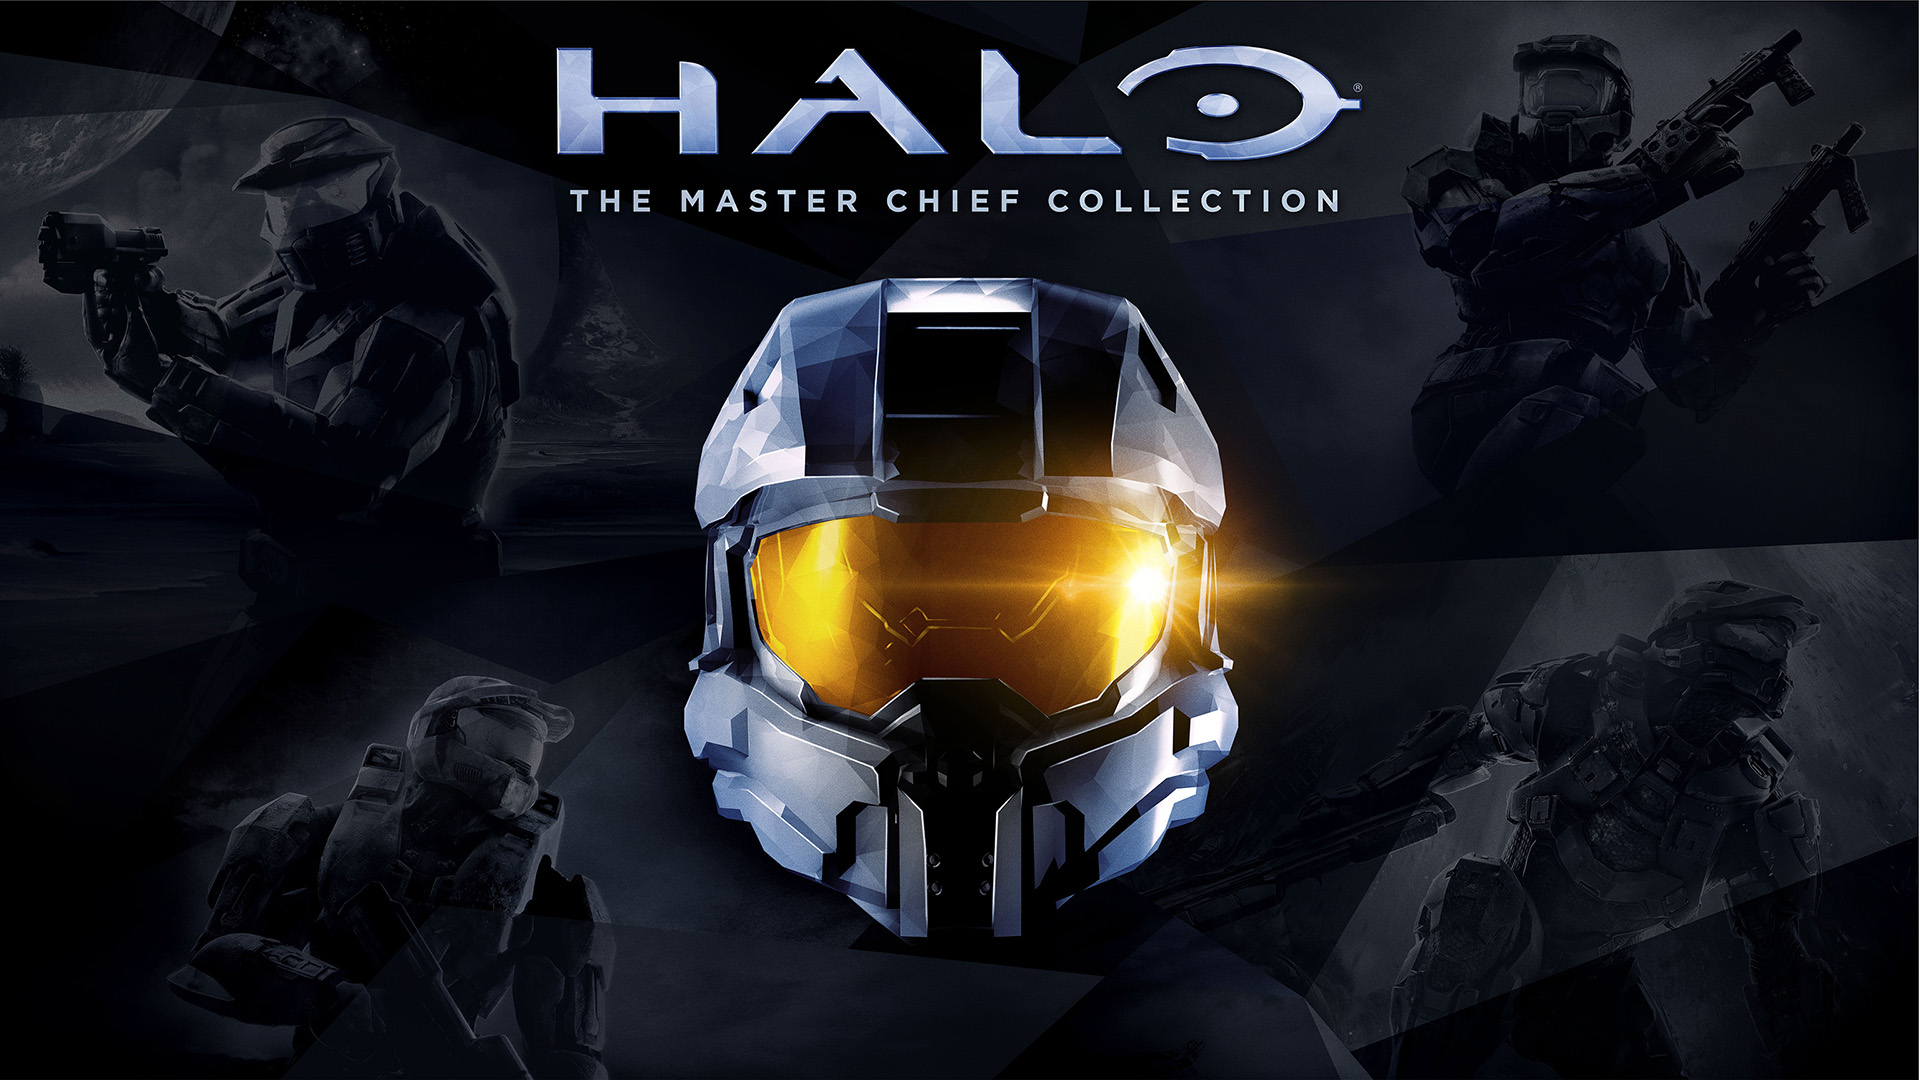 1402359776-halo-the-master-chief-collection-key-art